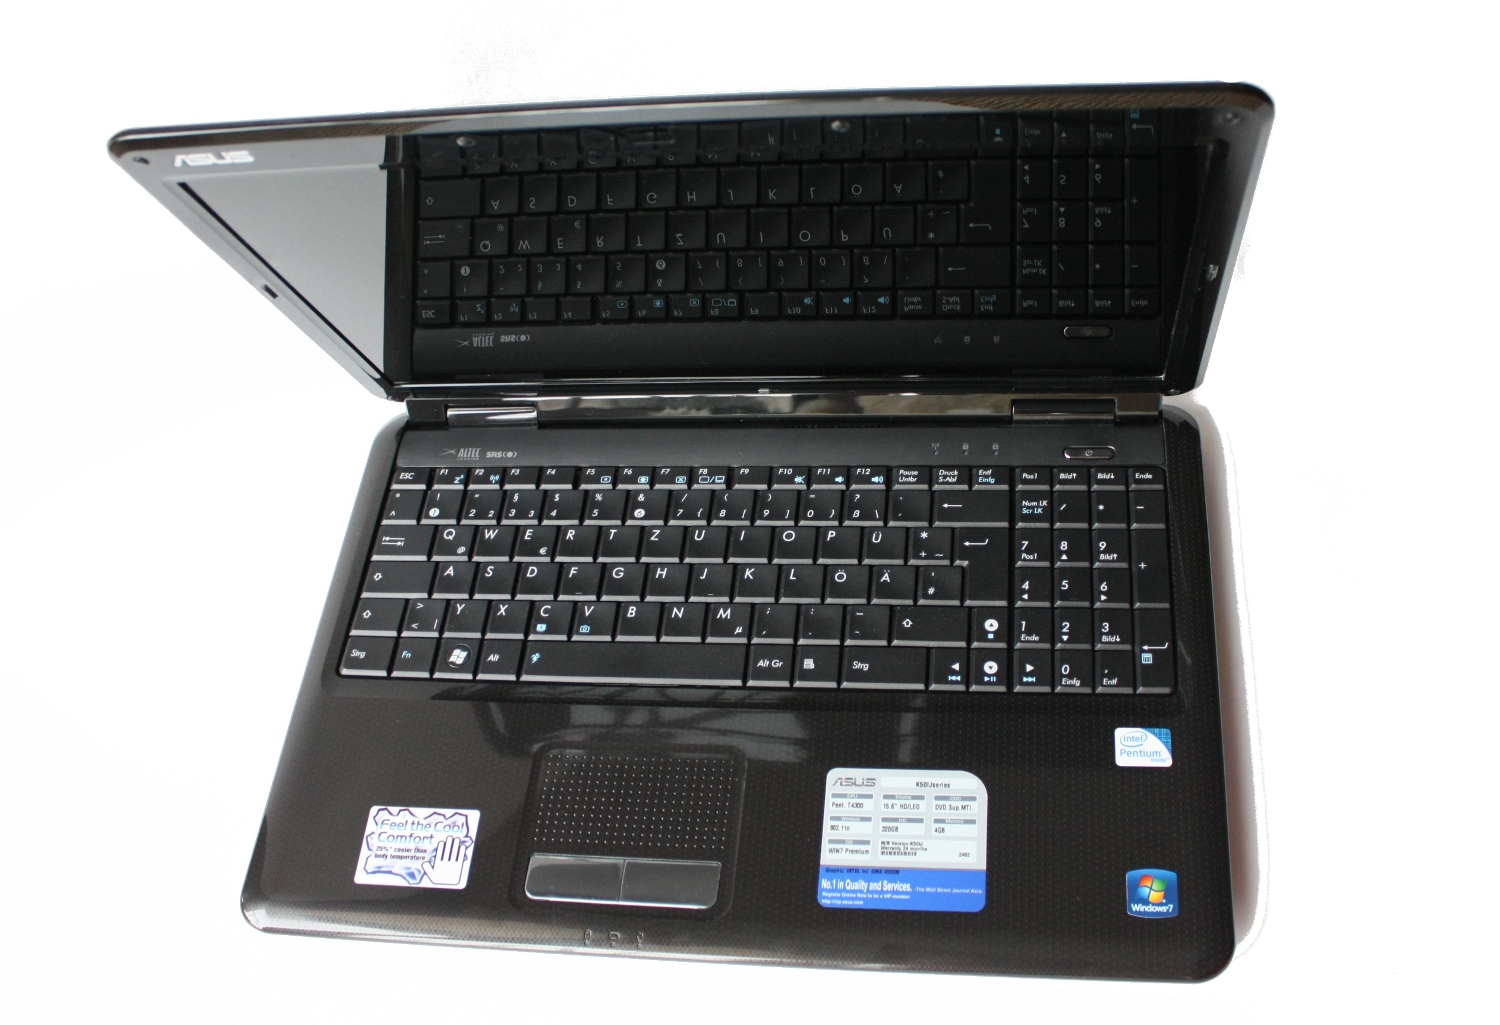 ASUS K50IJ SERIES NOTEBOOK DRIVER DOWNLOAD